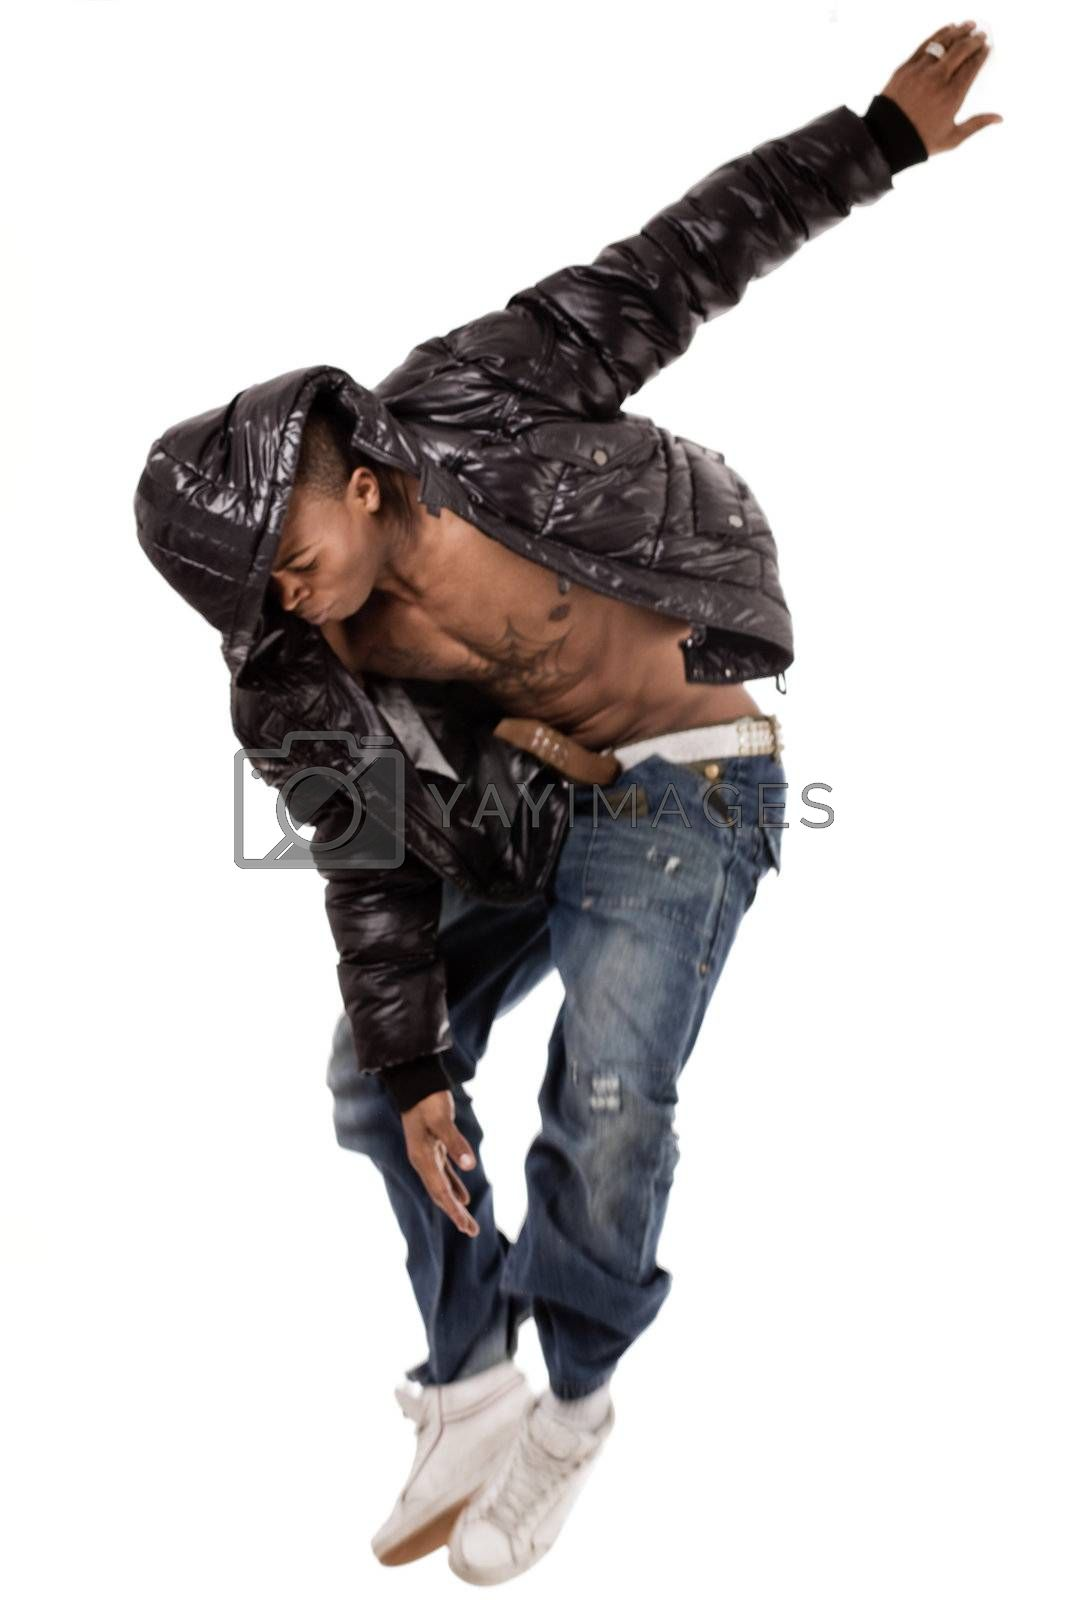 Stylish dance performance by black man on white background